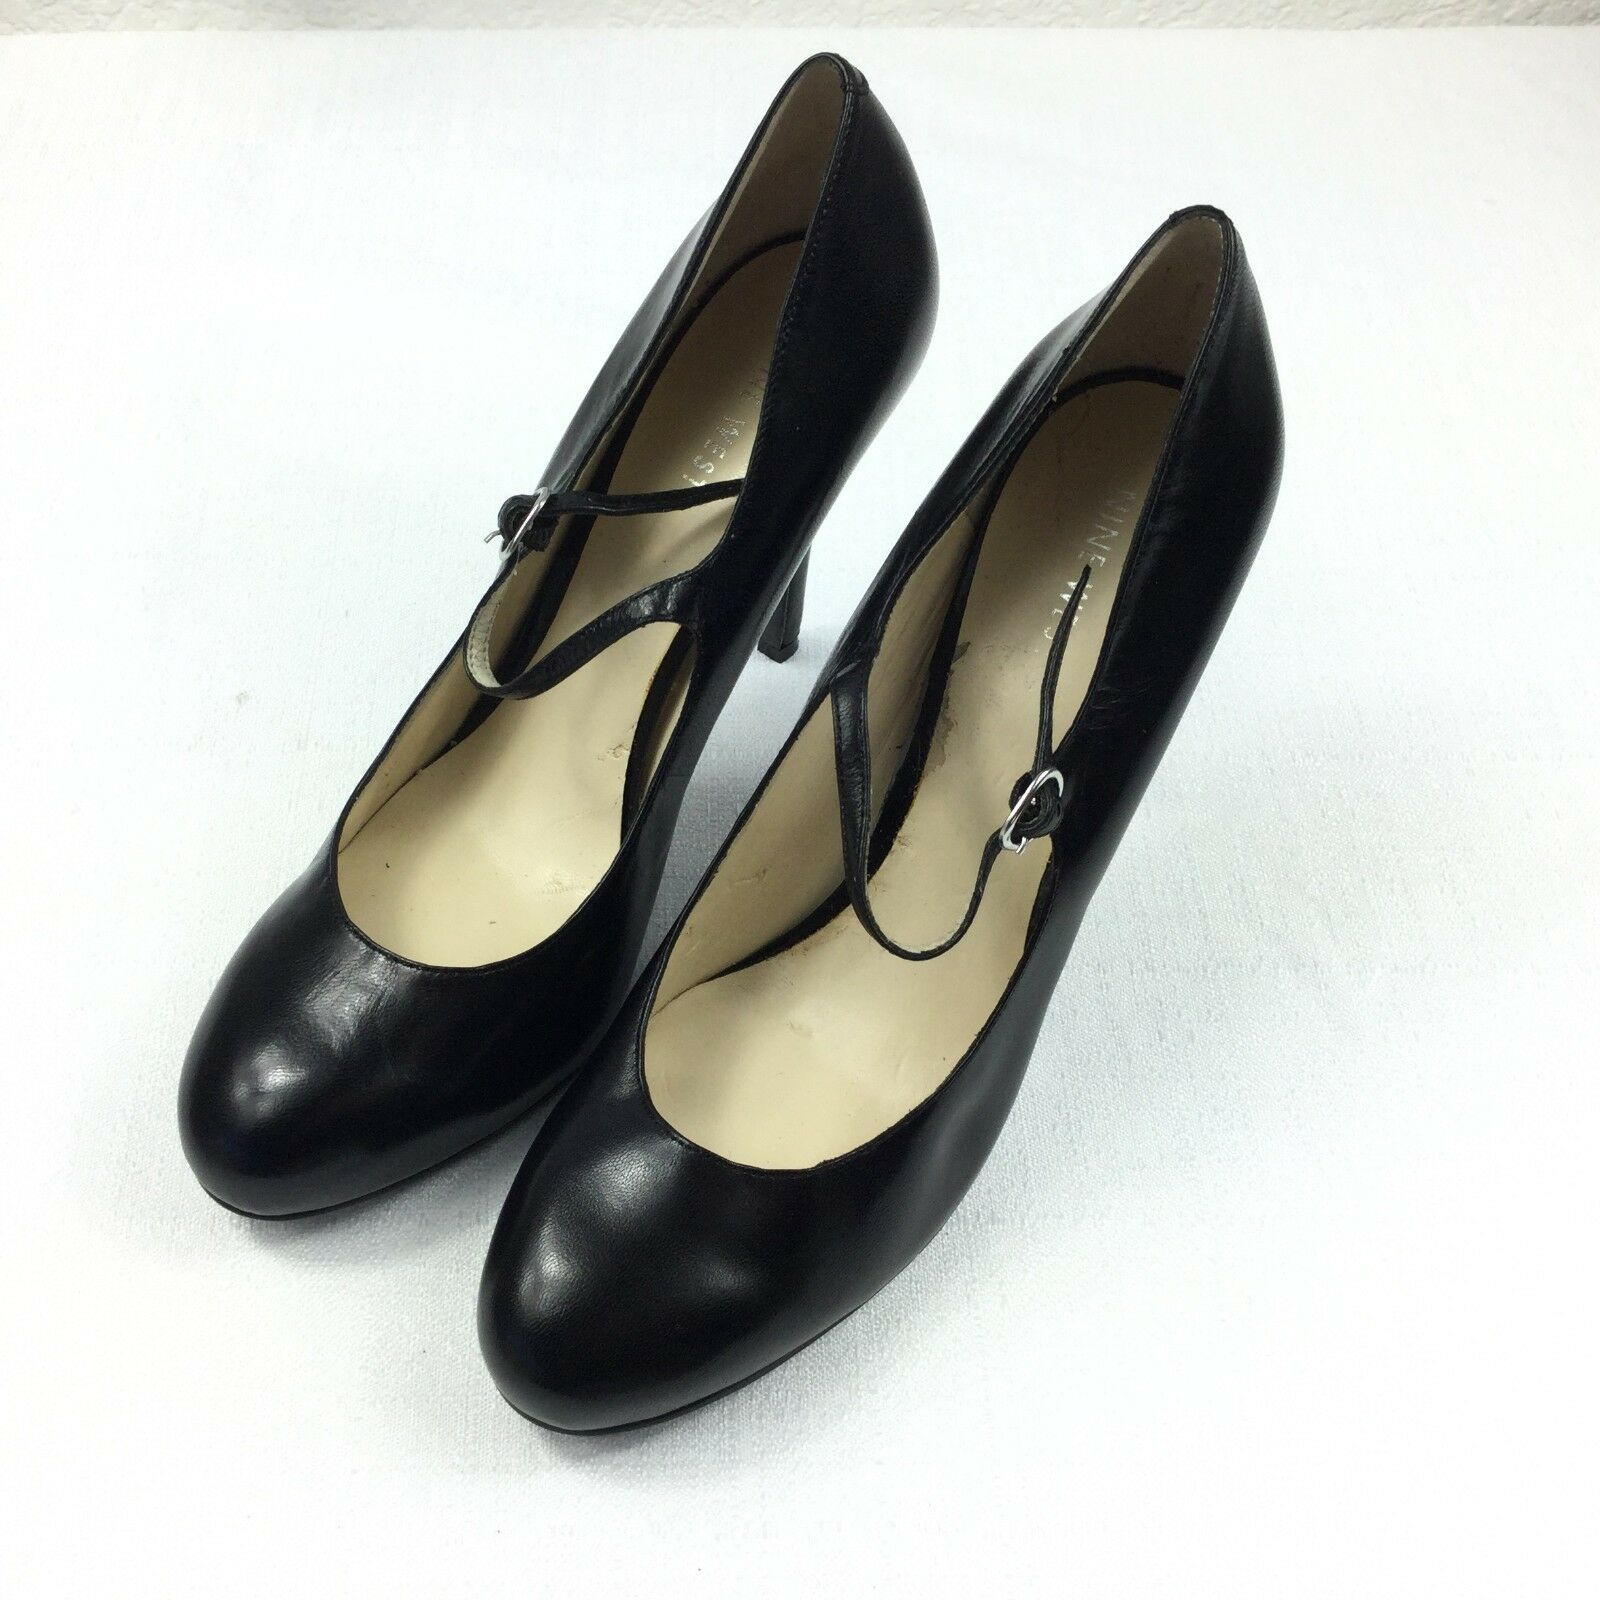 Nine West Women Size 8.5 Black Leather Heel Shoes